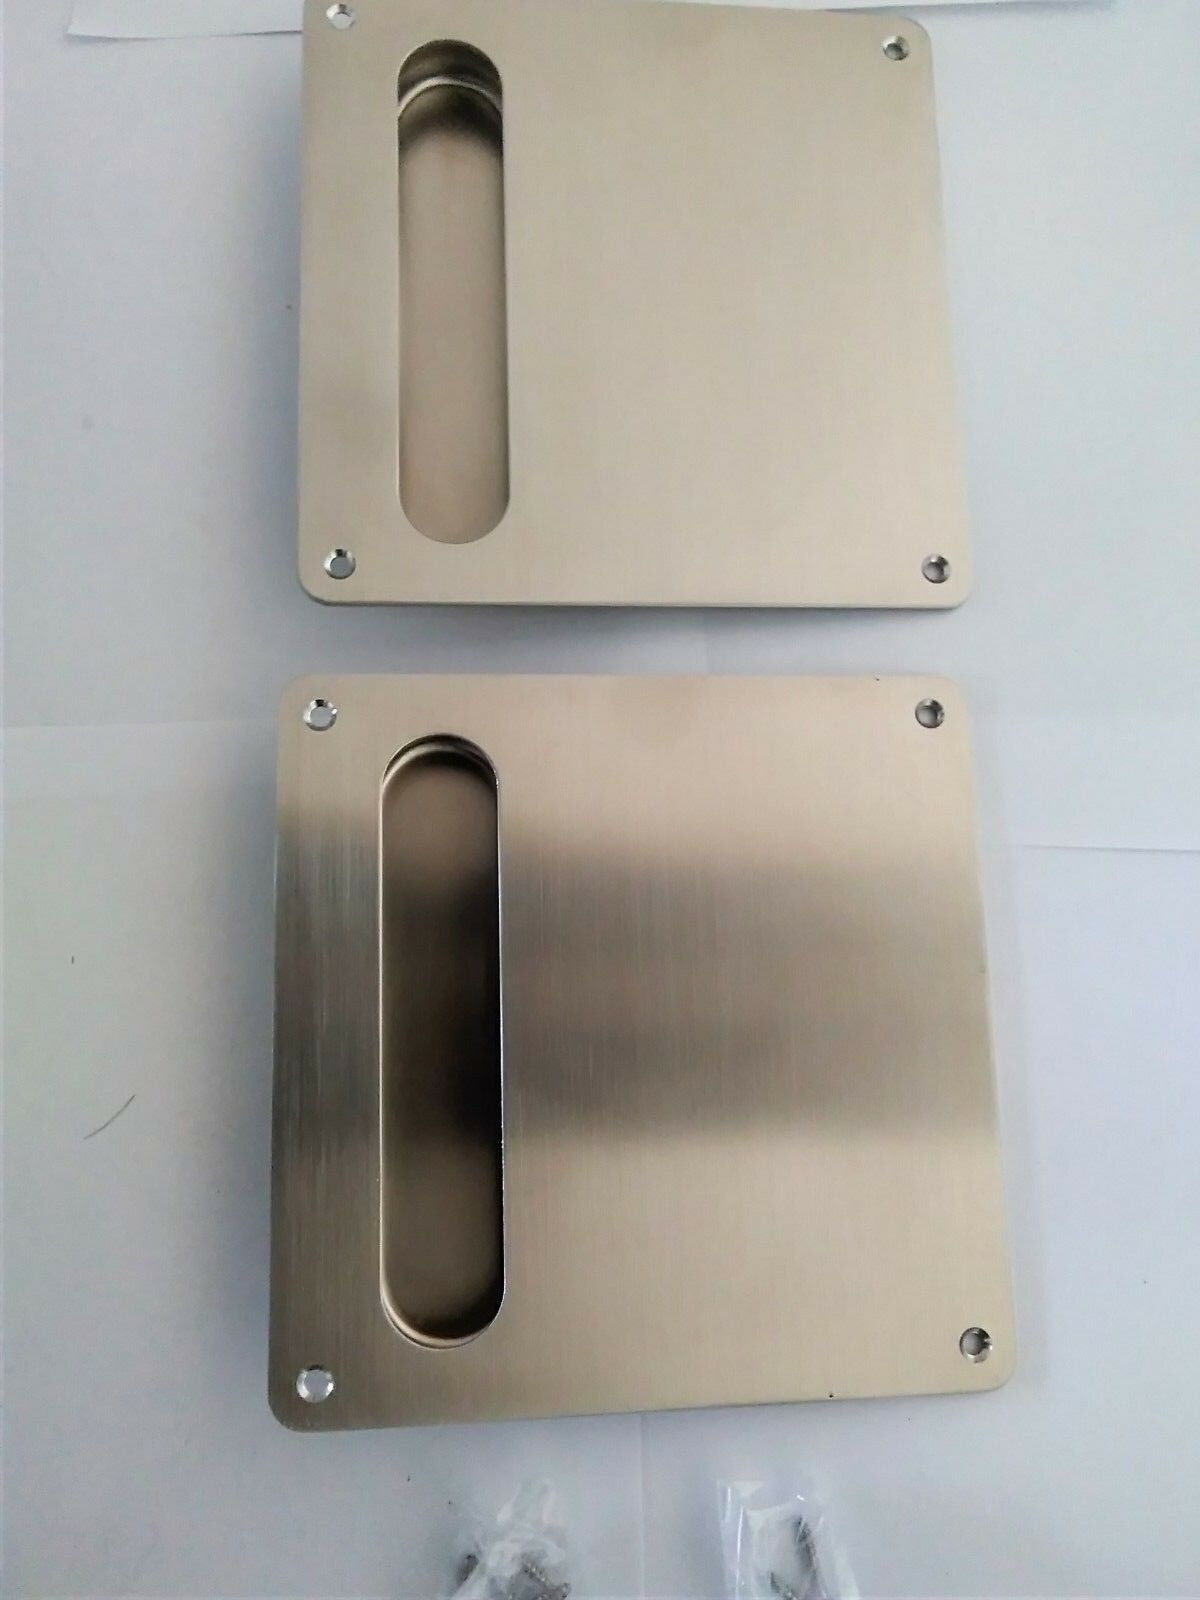 2 x FLUSH INSET PULL HANDLE RECESSED ON SQUARE PLATE 170 x 170 mm - FREE POSTAGE